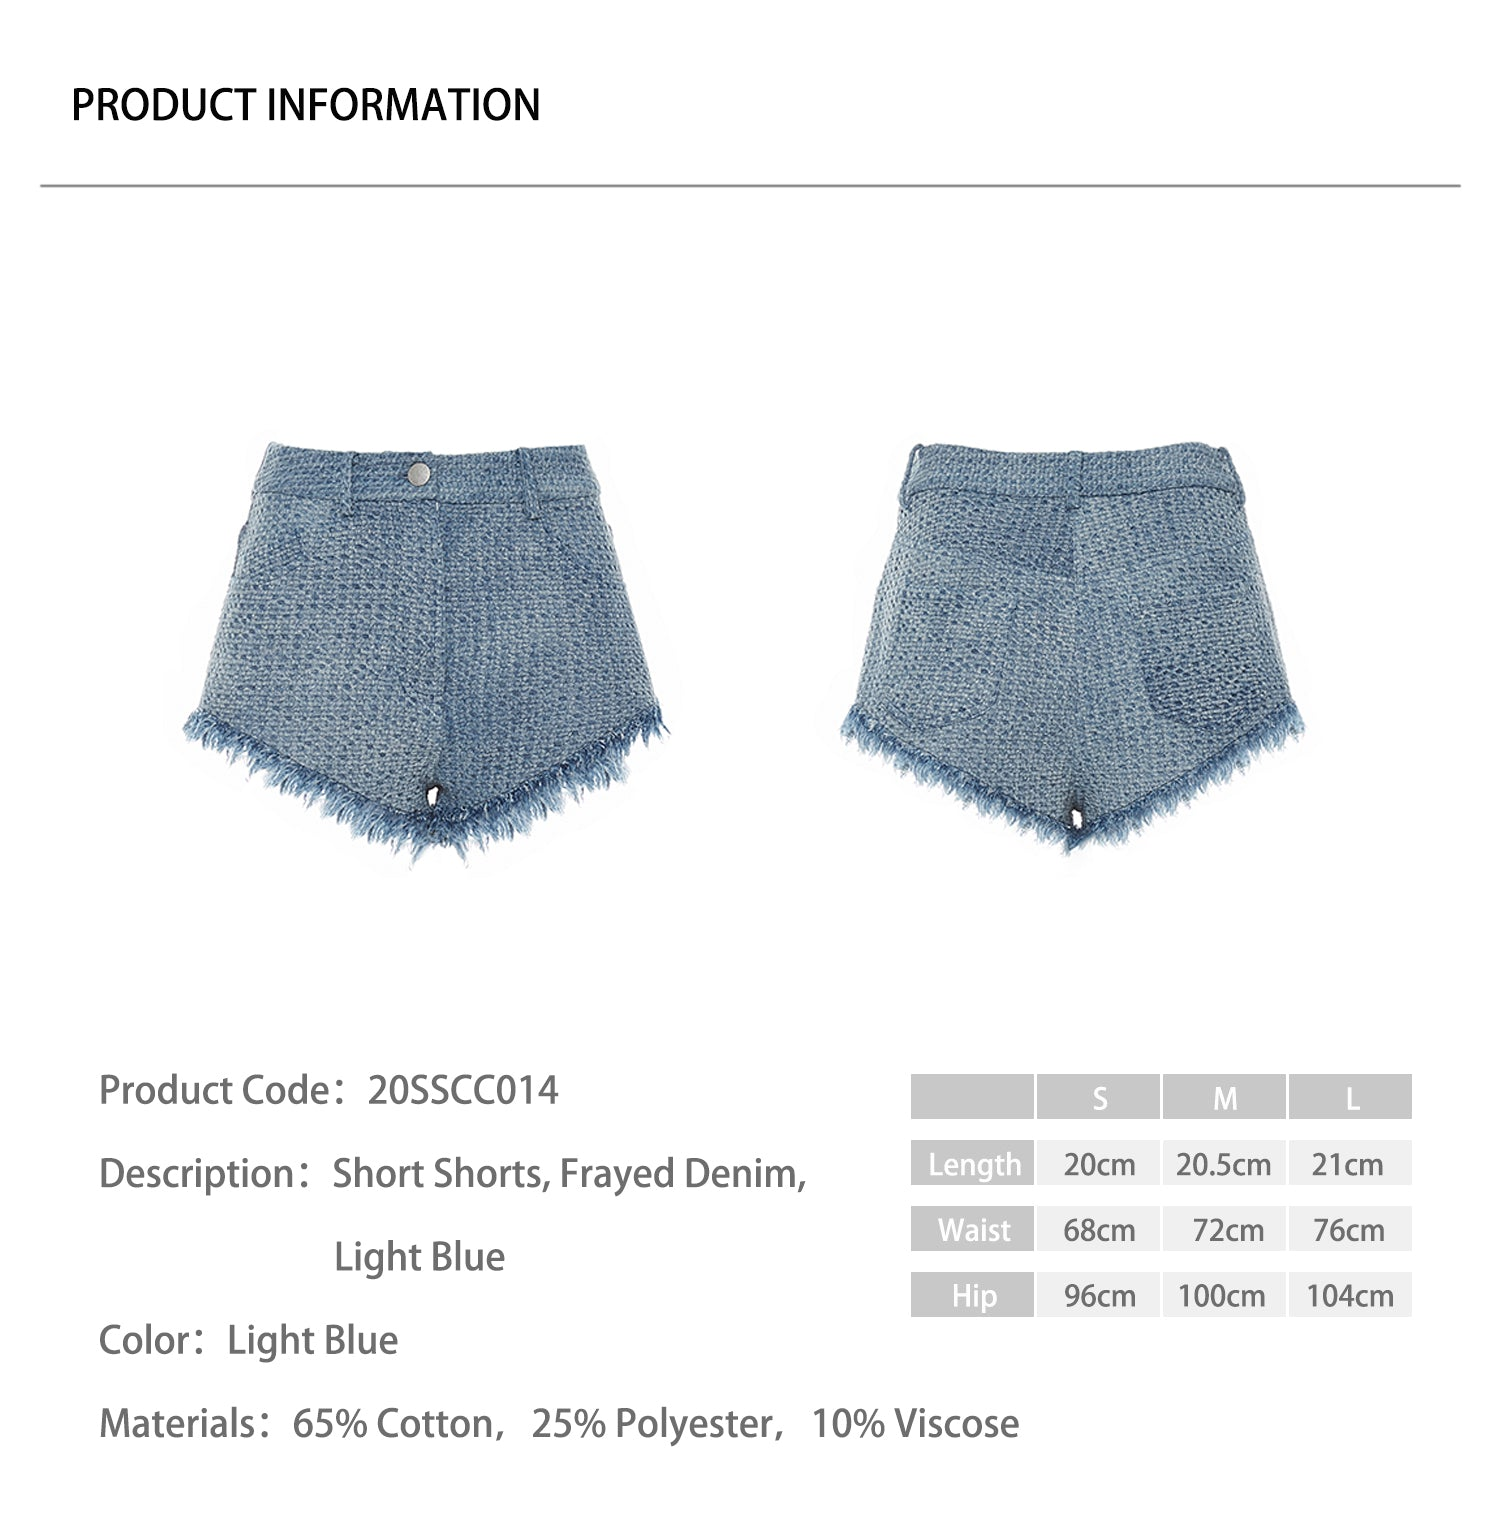 Short Shorts, Frayed Denim, Light Blue